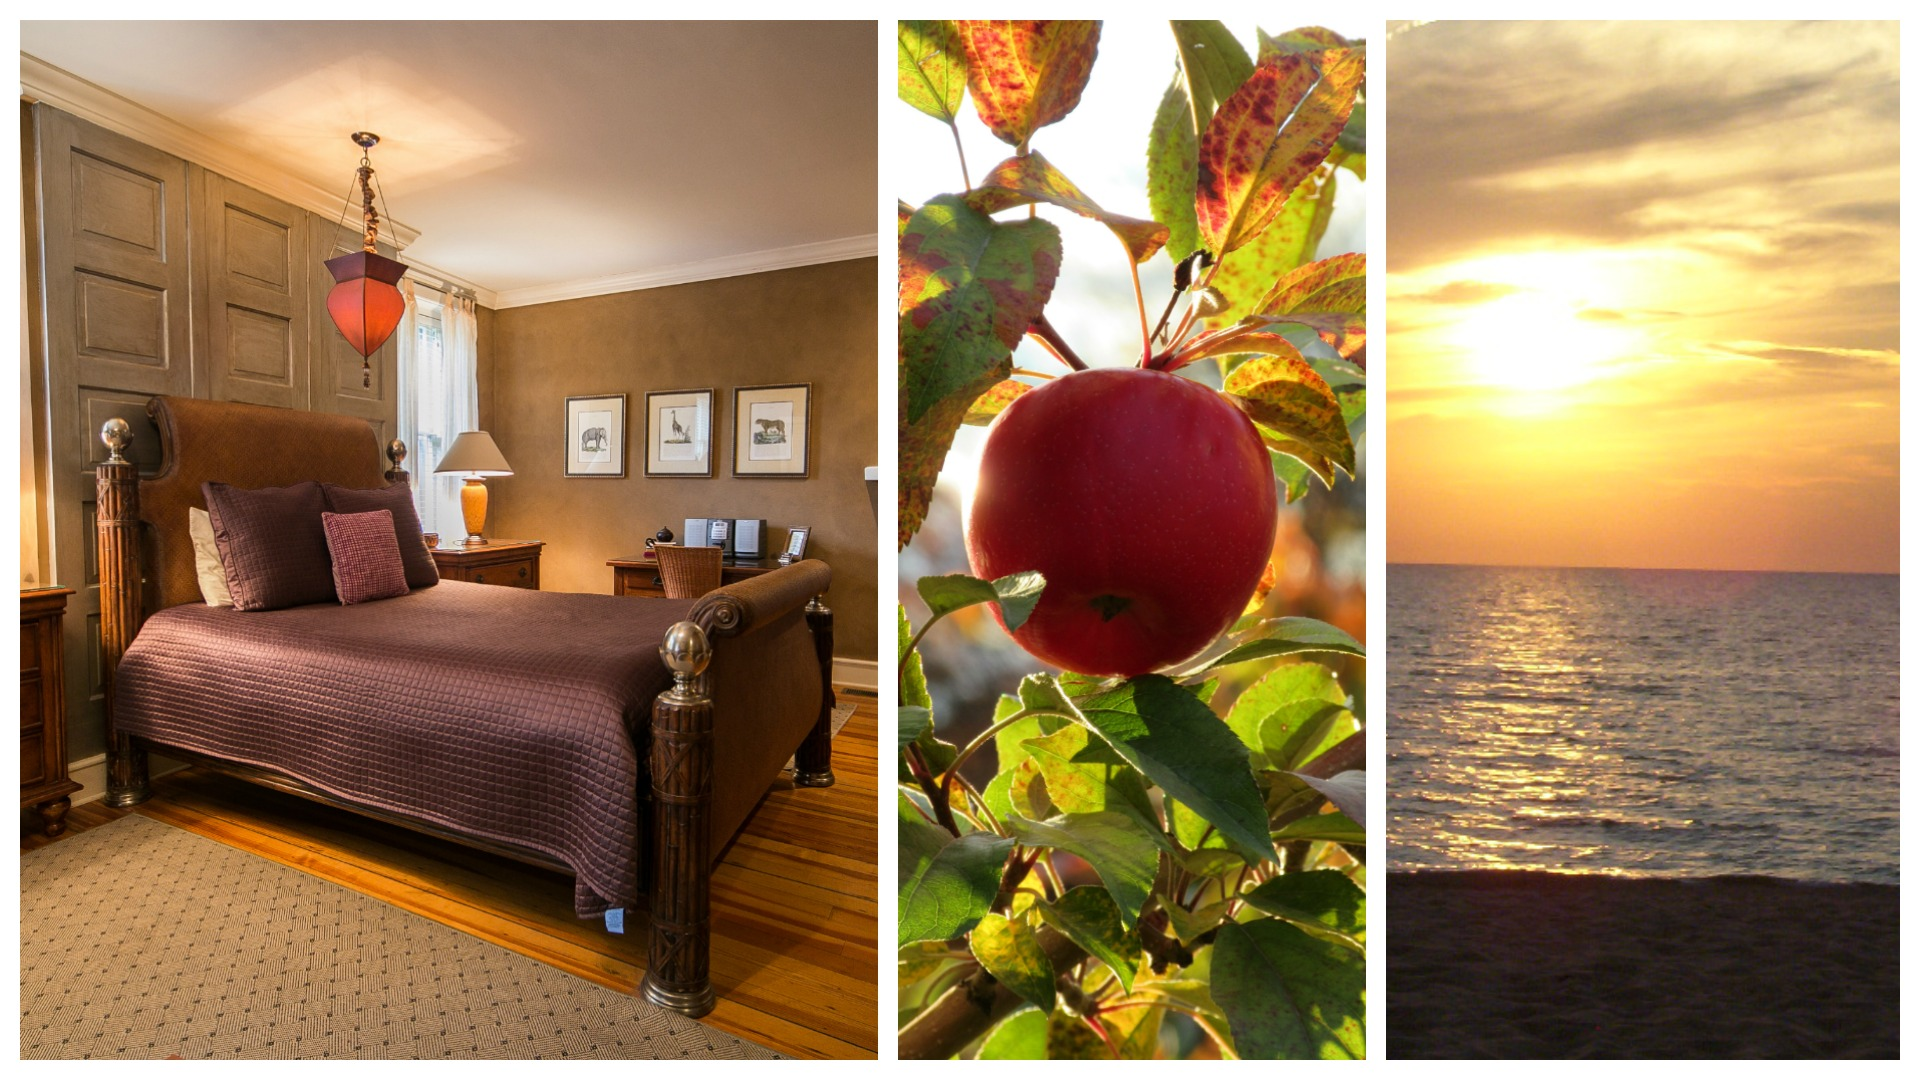 Collage of a bedroom wiht high back bed and purple spread, a plum on the tree, and the sun setting over the water.